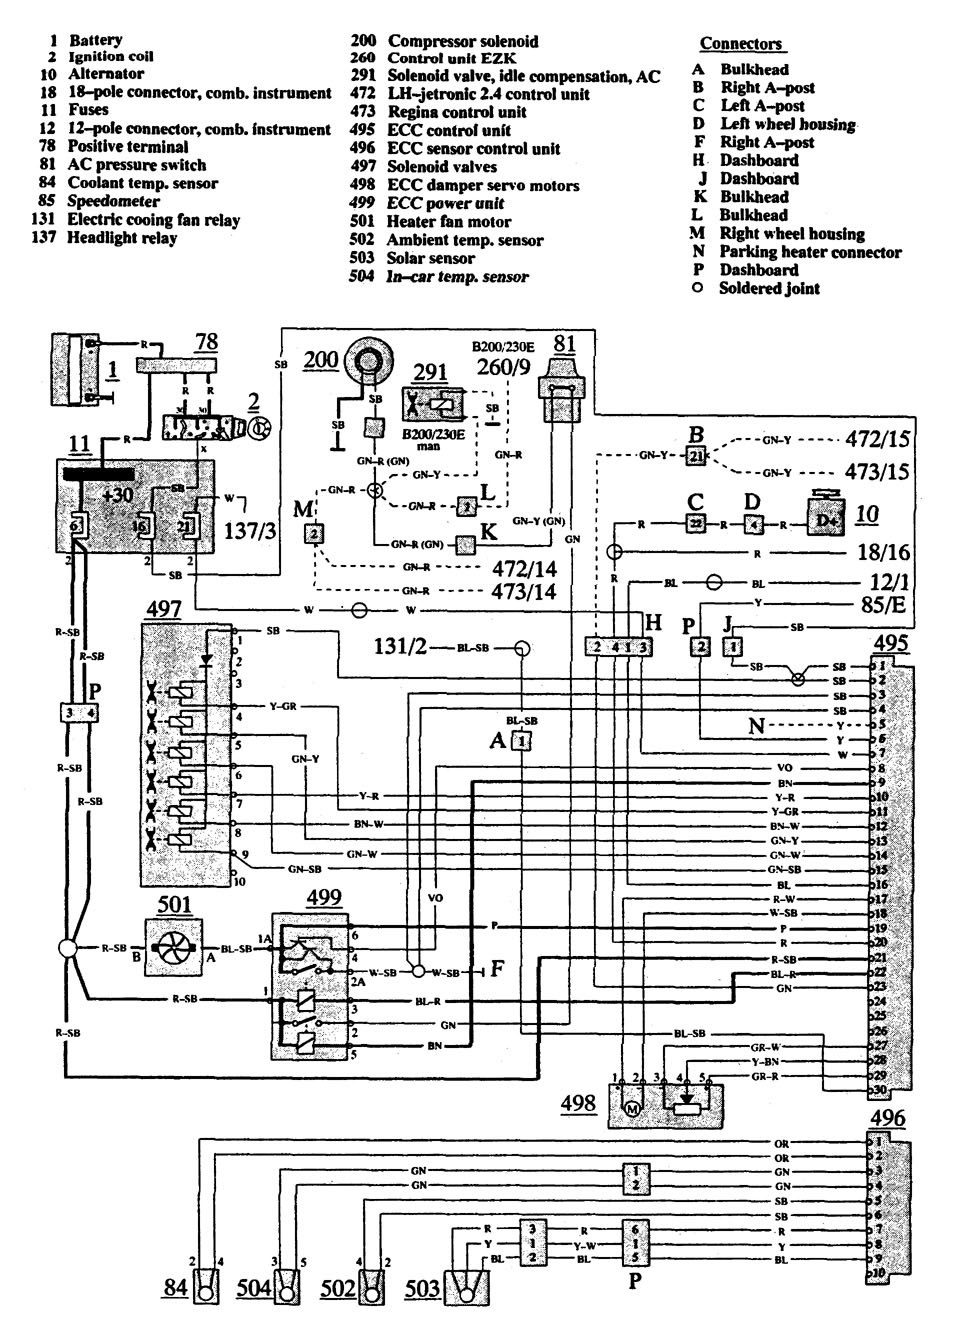 volvo 740 wiring diagrams wiring diagram echo headlight wiring schematic volvo 740 headlight wiring diagram #6